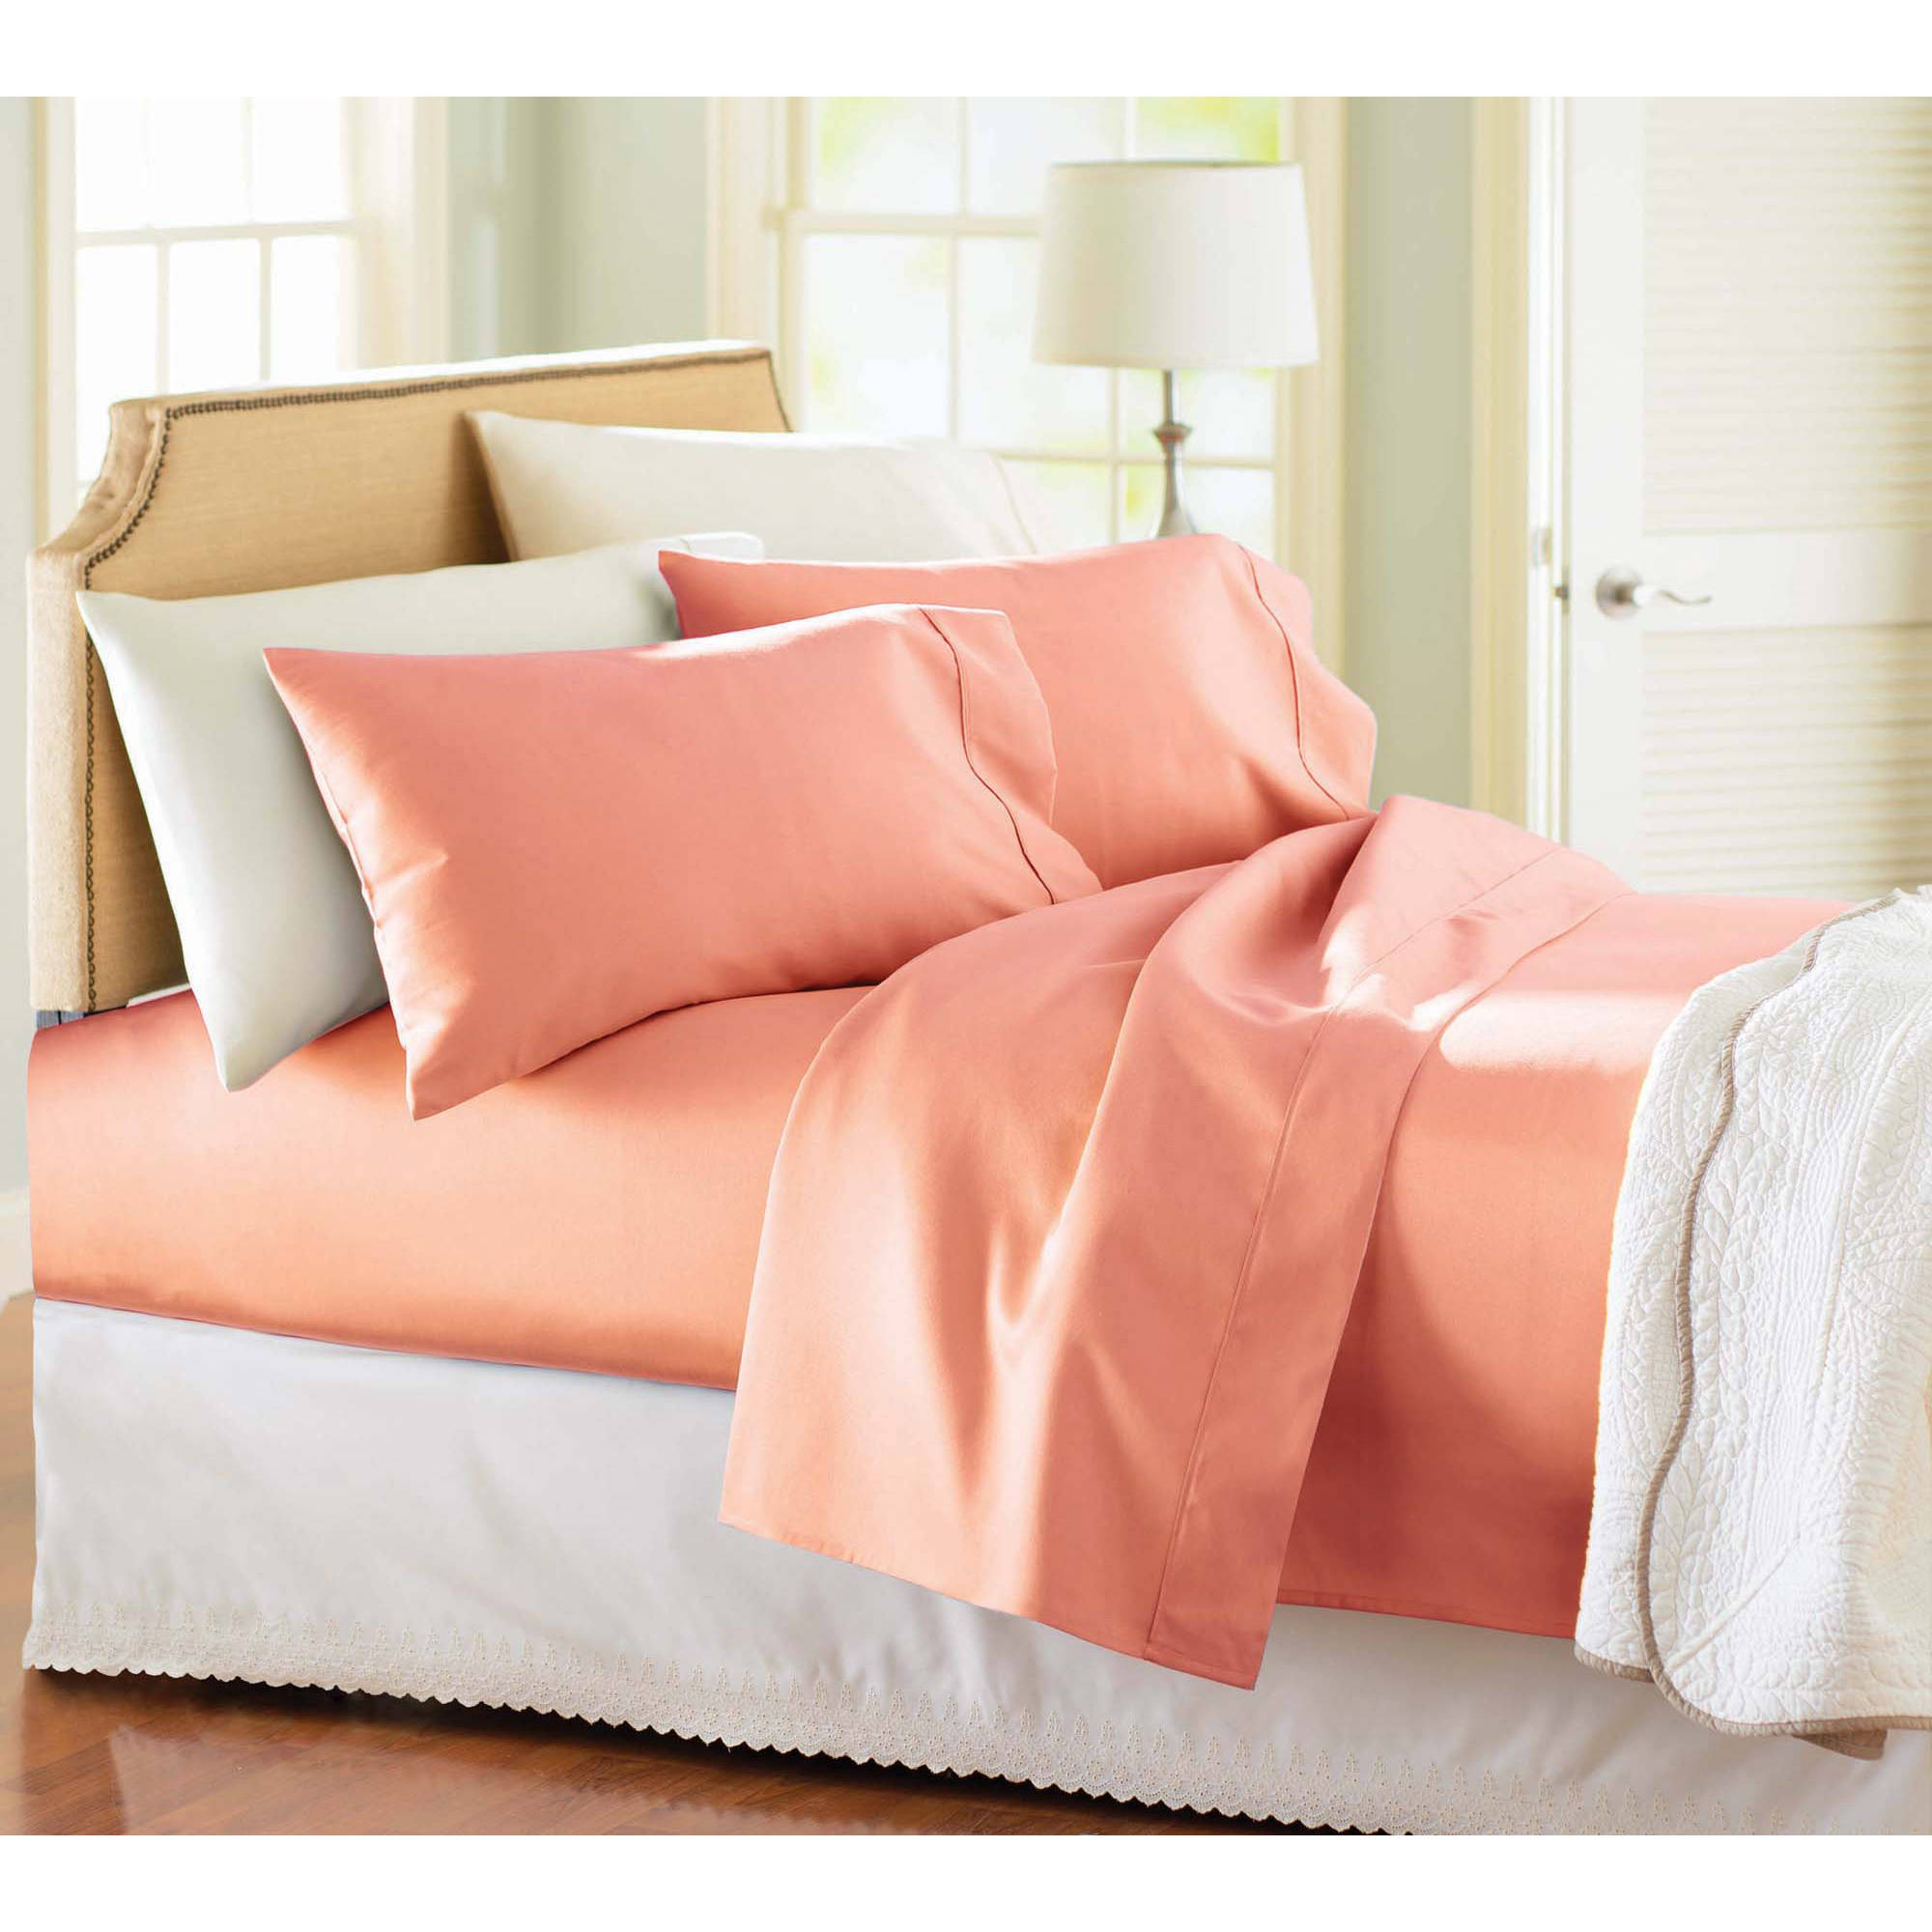 Better Homes And Gardens 300 Thread Count Wrinkle Free Sheet Set    Walmart.com